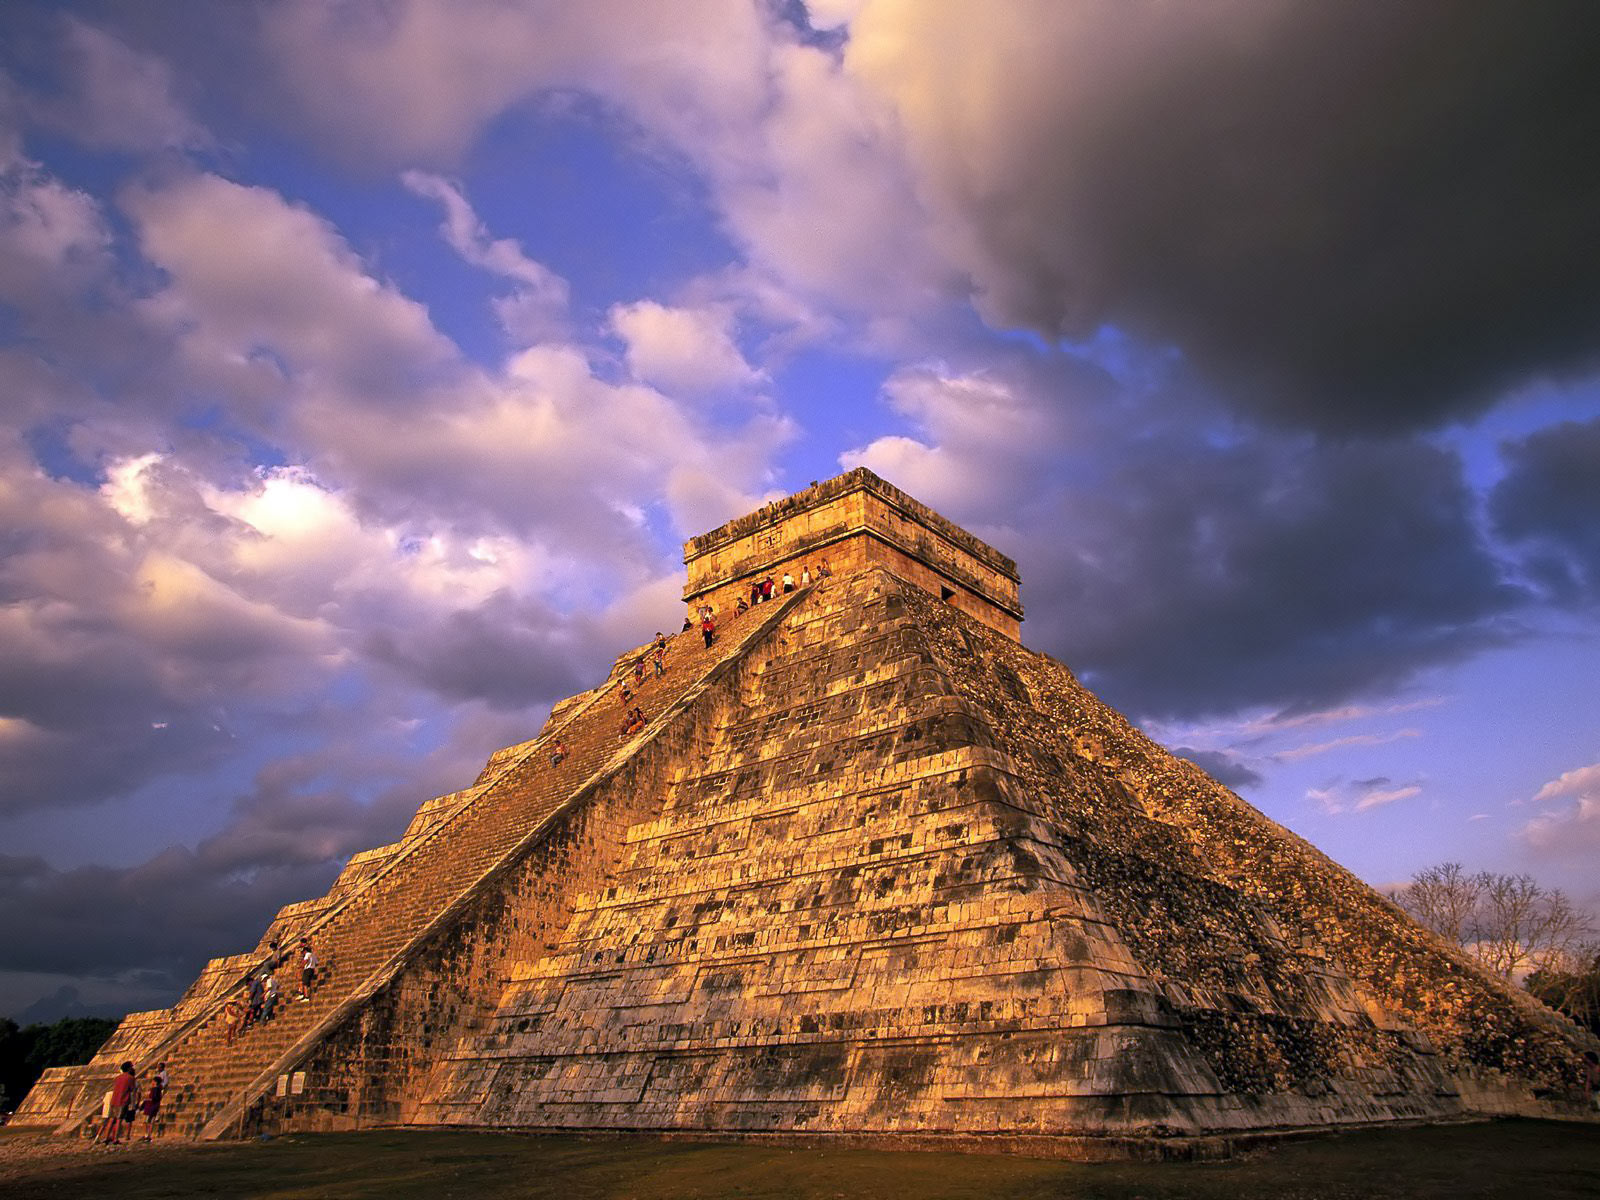 Mexico Mayan Pyramid hd Wallpaper High Quality WallpapersWallpaper 1600x1200